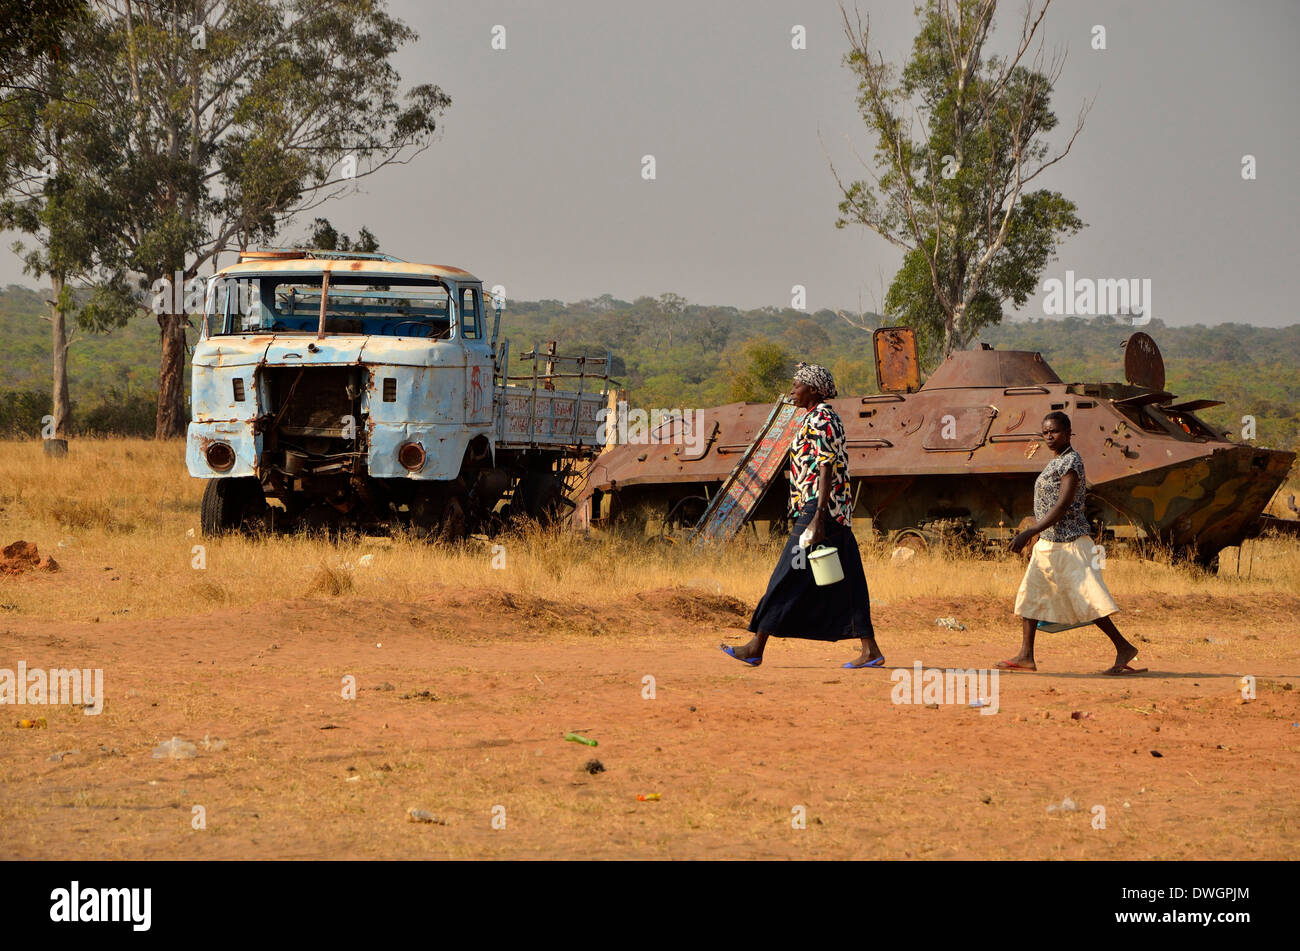 Women and tank, Angola, Africa - Stock Image